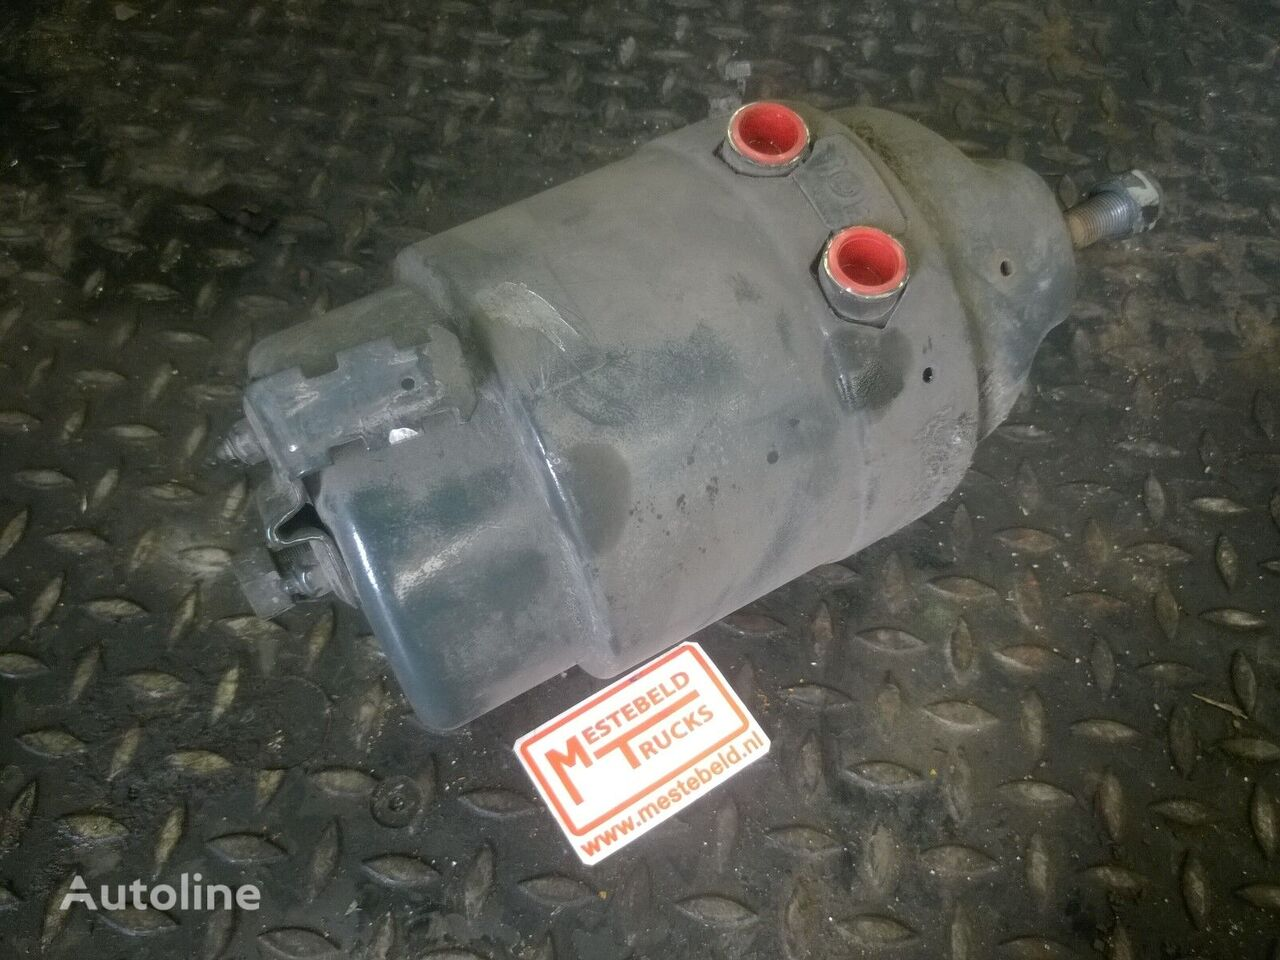 MERCEDES-BENZ brake drum for MERCEDES-BENZ Rembooster rechtsachter tractor unit